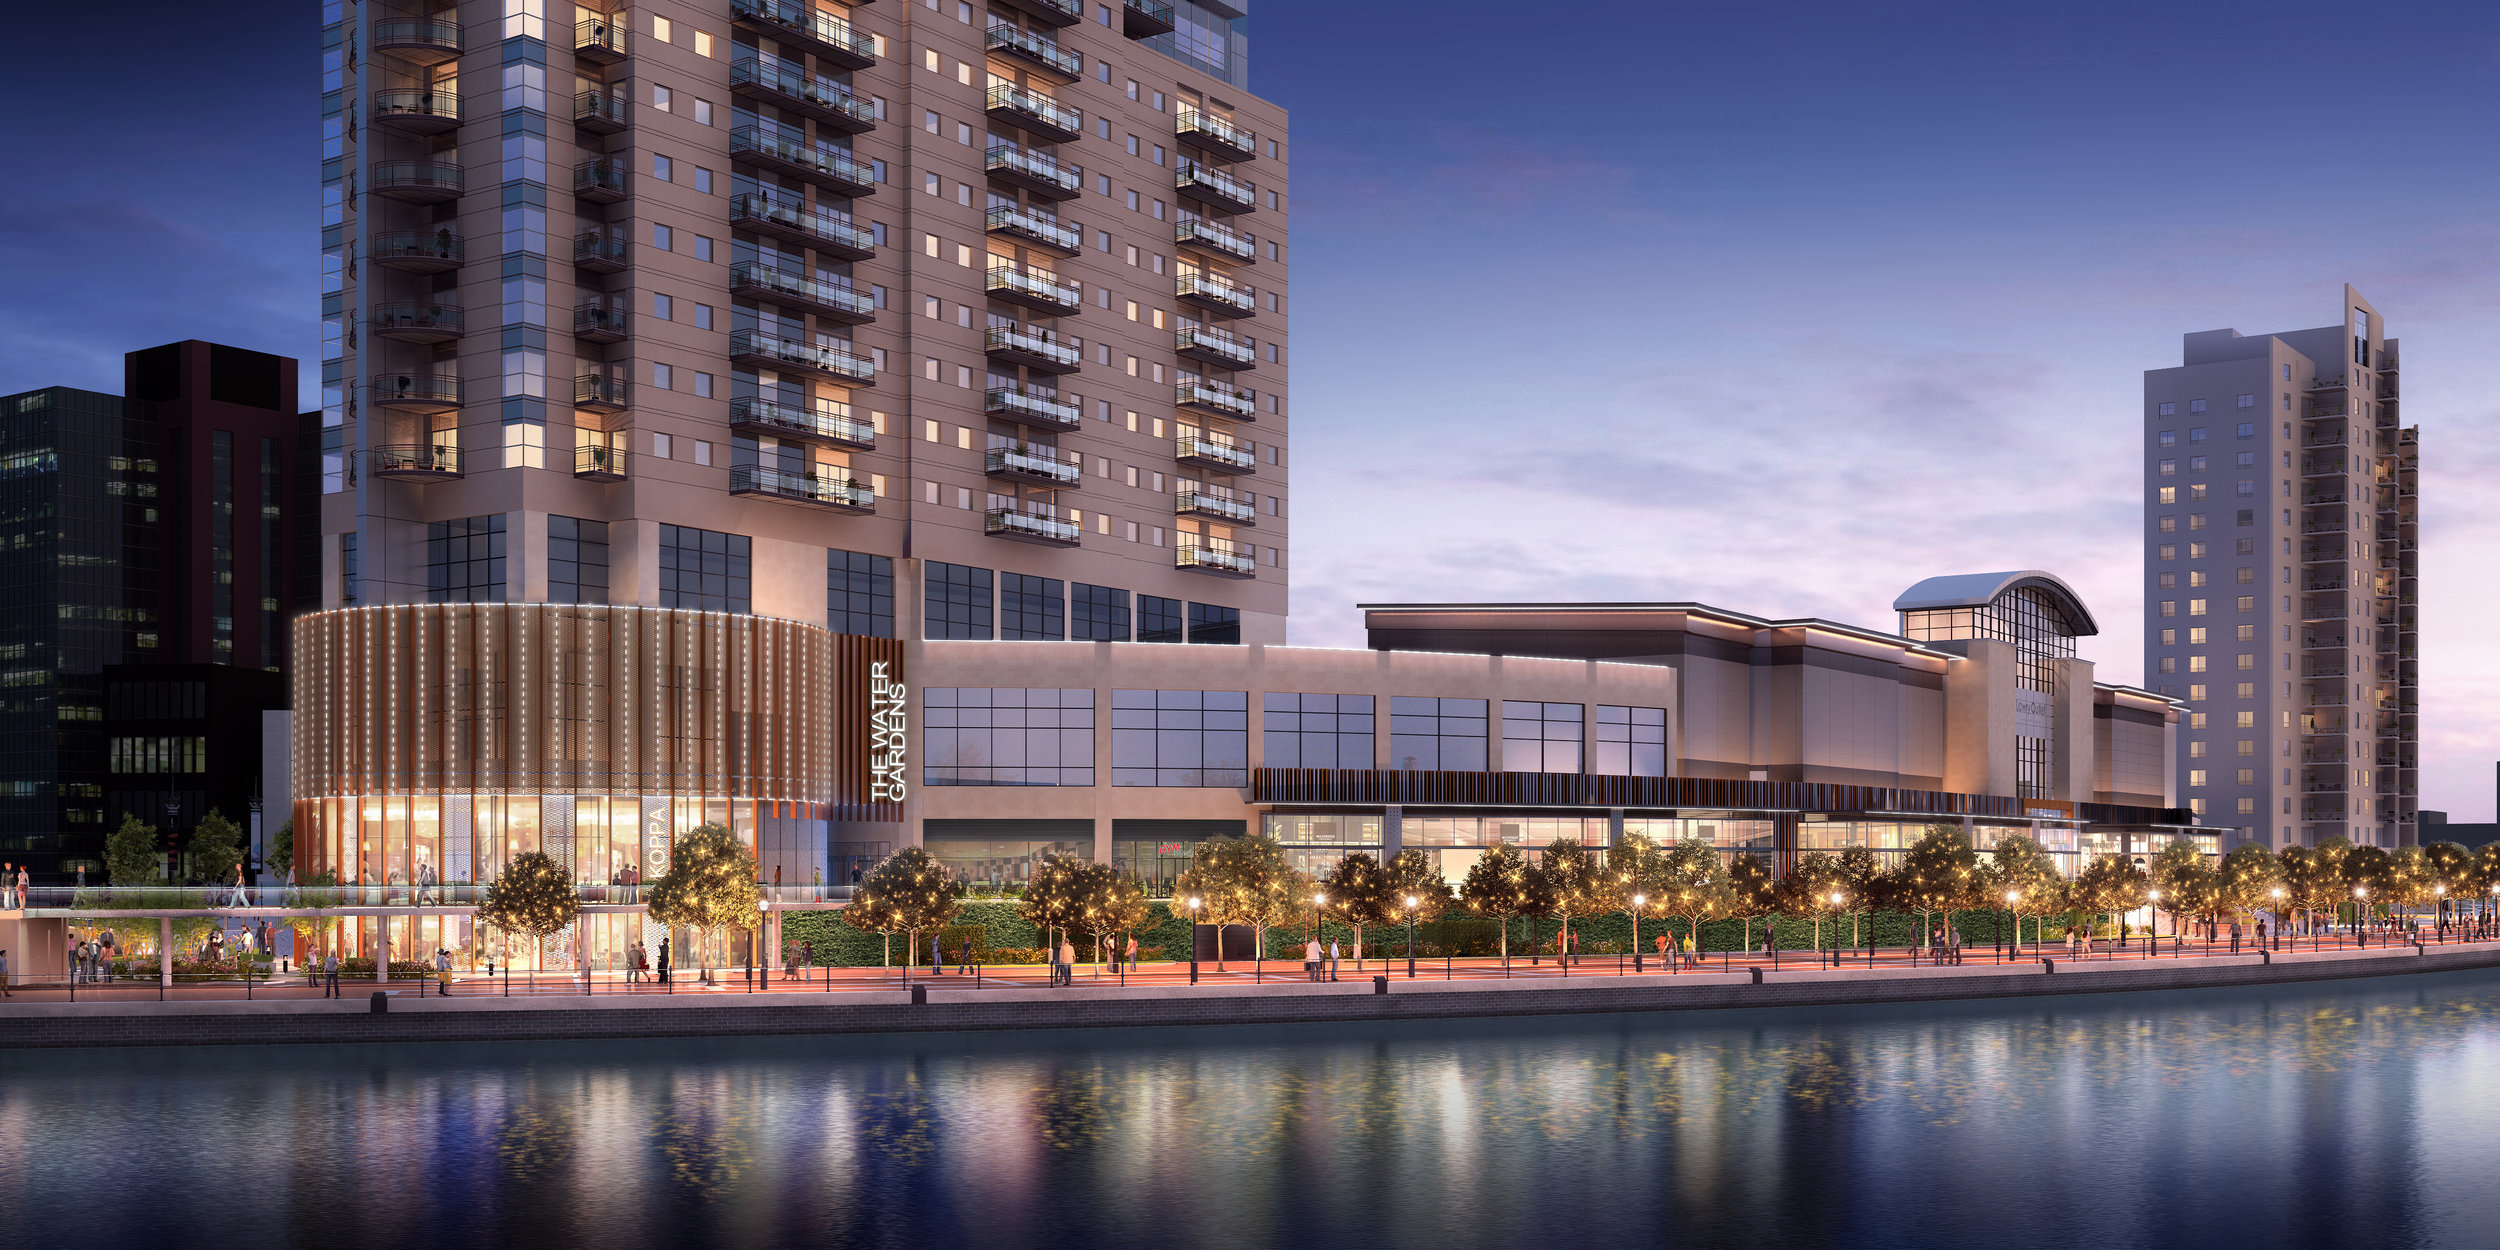 CGI image of 'The Watergardens' development